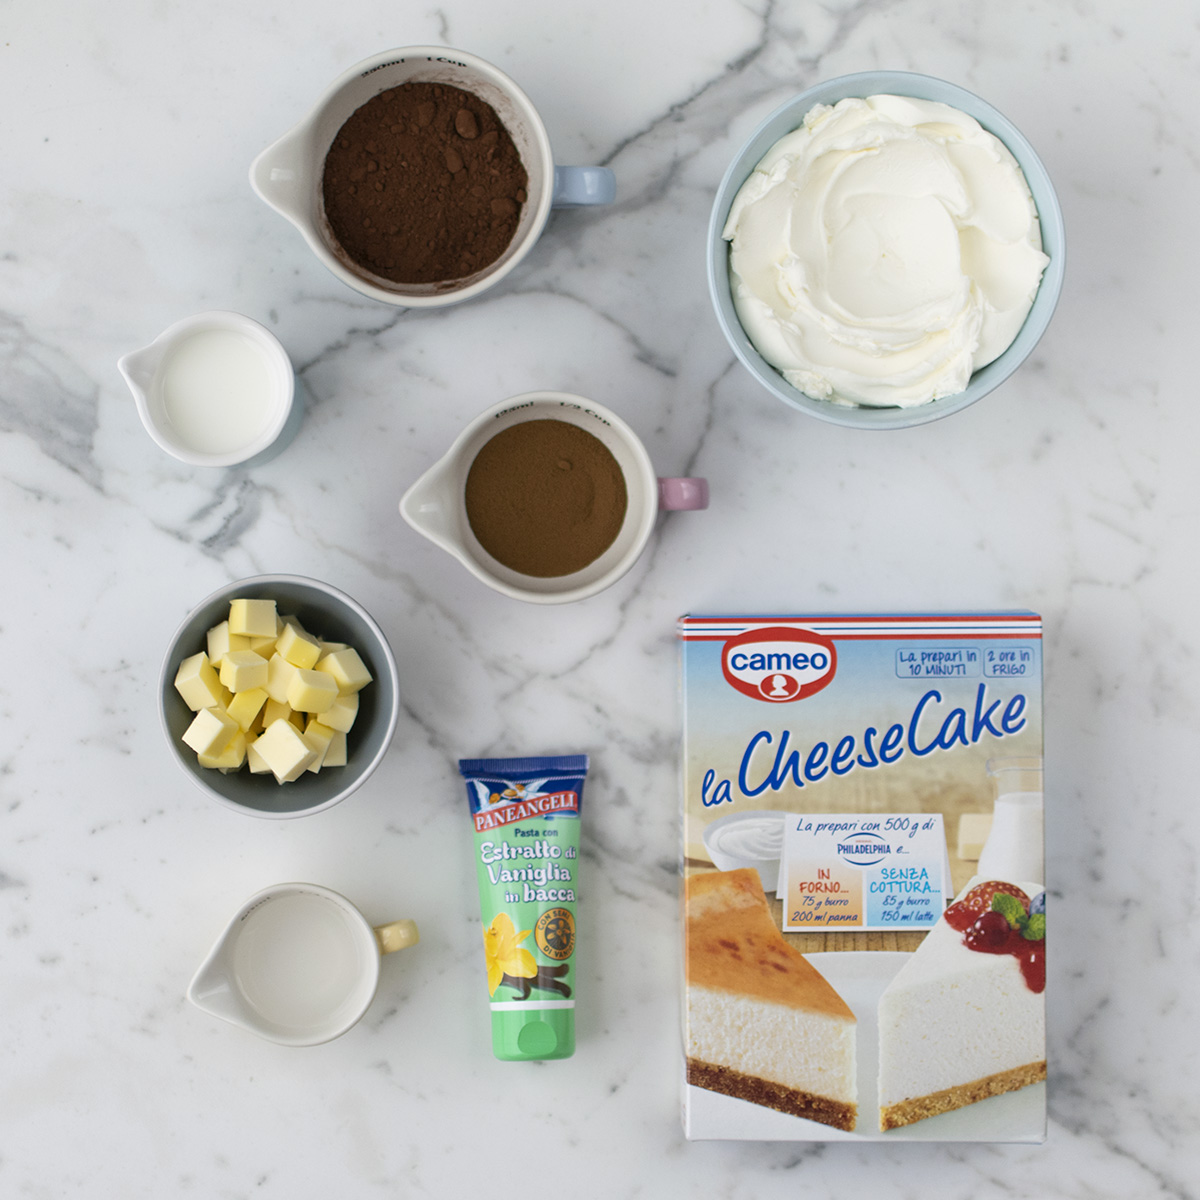 cappuccino_cheesecake_ingredienti